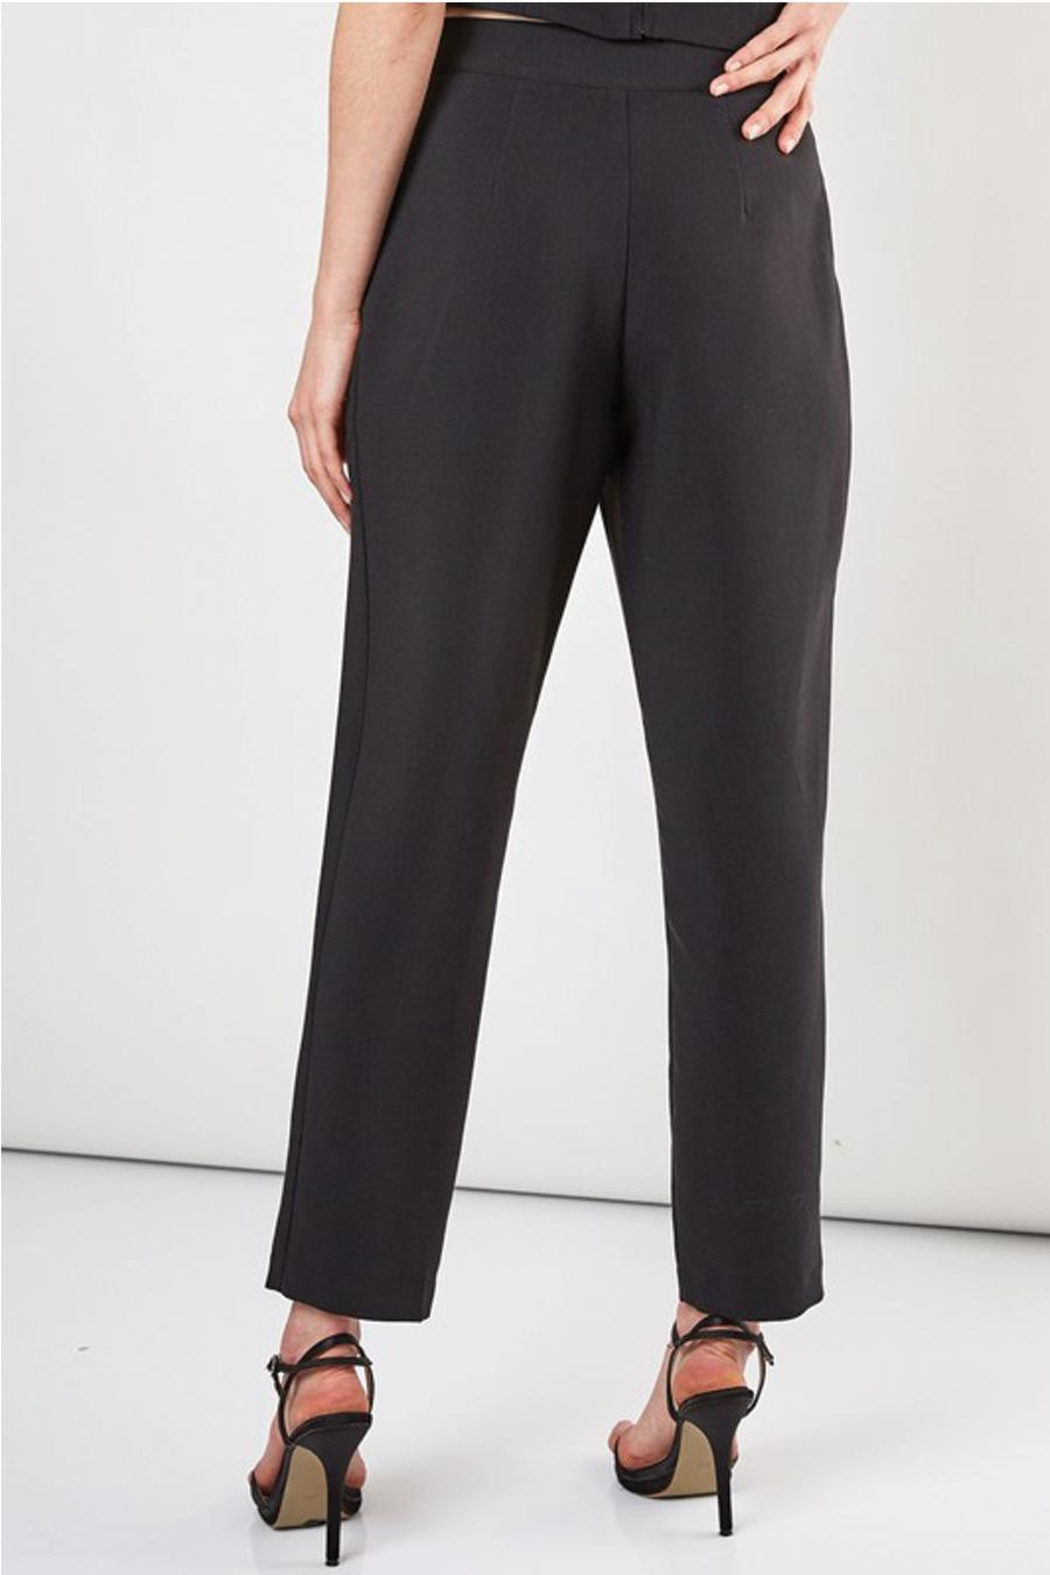 Do & Be Slim Fit Pant With Side Zipper - Side Cropped Image